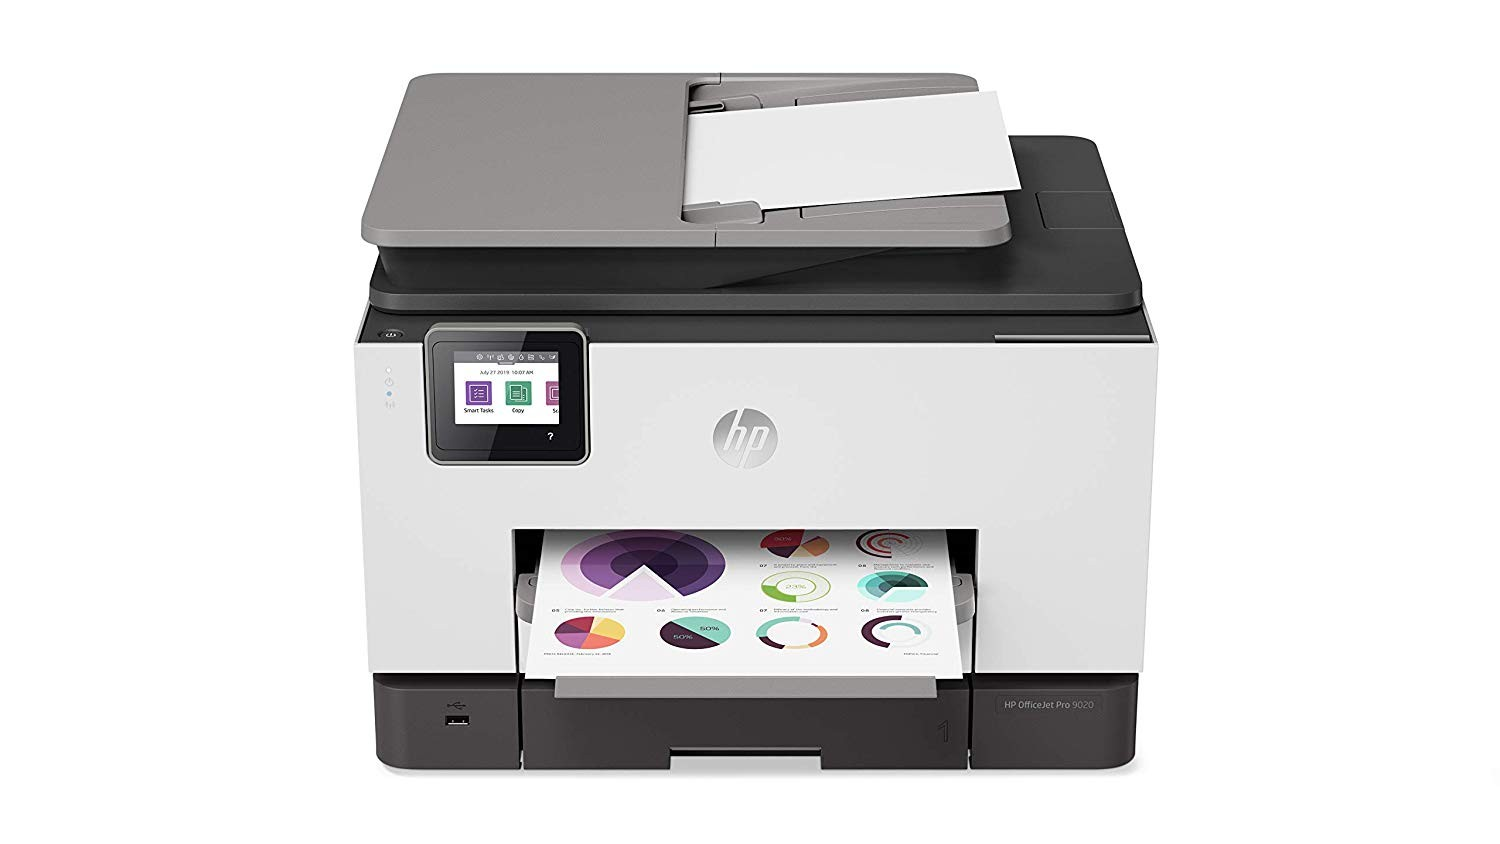 HP OfficeJet Pro 9020 All-in-One Wireless Color Ink-Jet Printer 1MR78A#B1H